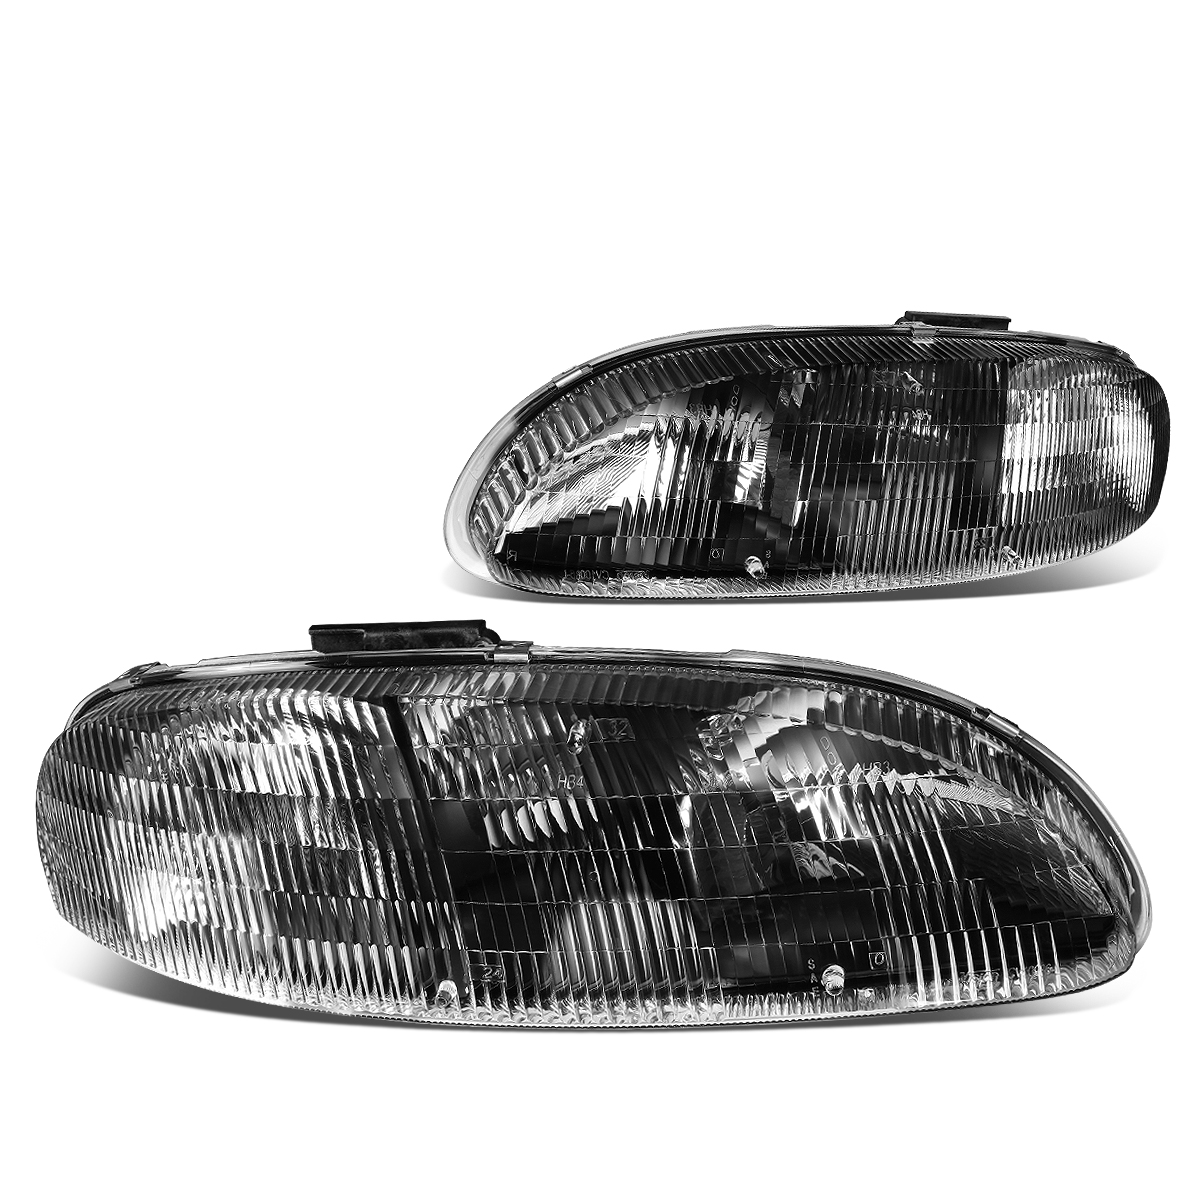 95 01 Chevy Lumina 99 Monte Carlo Headlight Embly Driver Penger Side Black